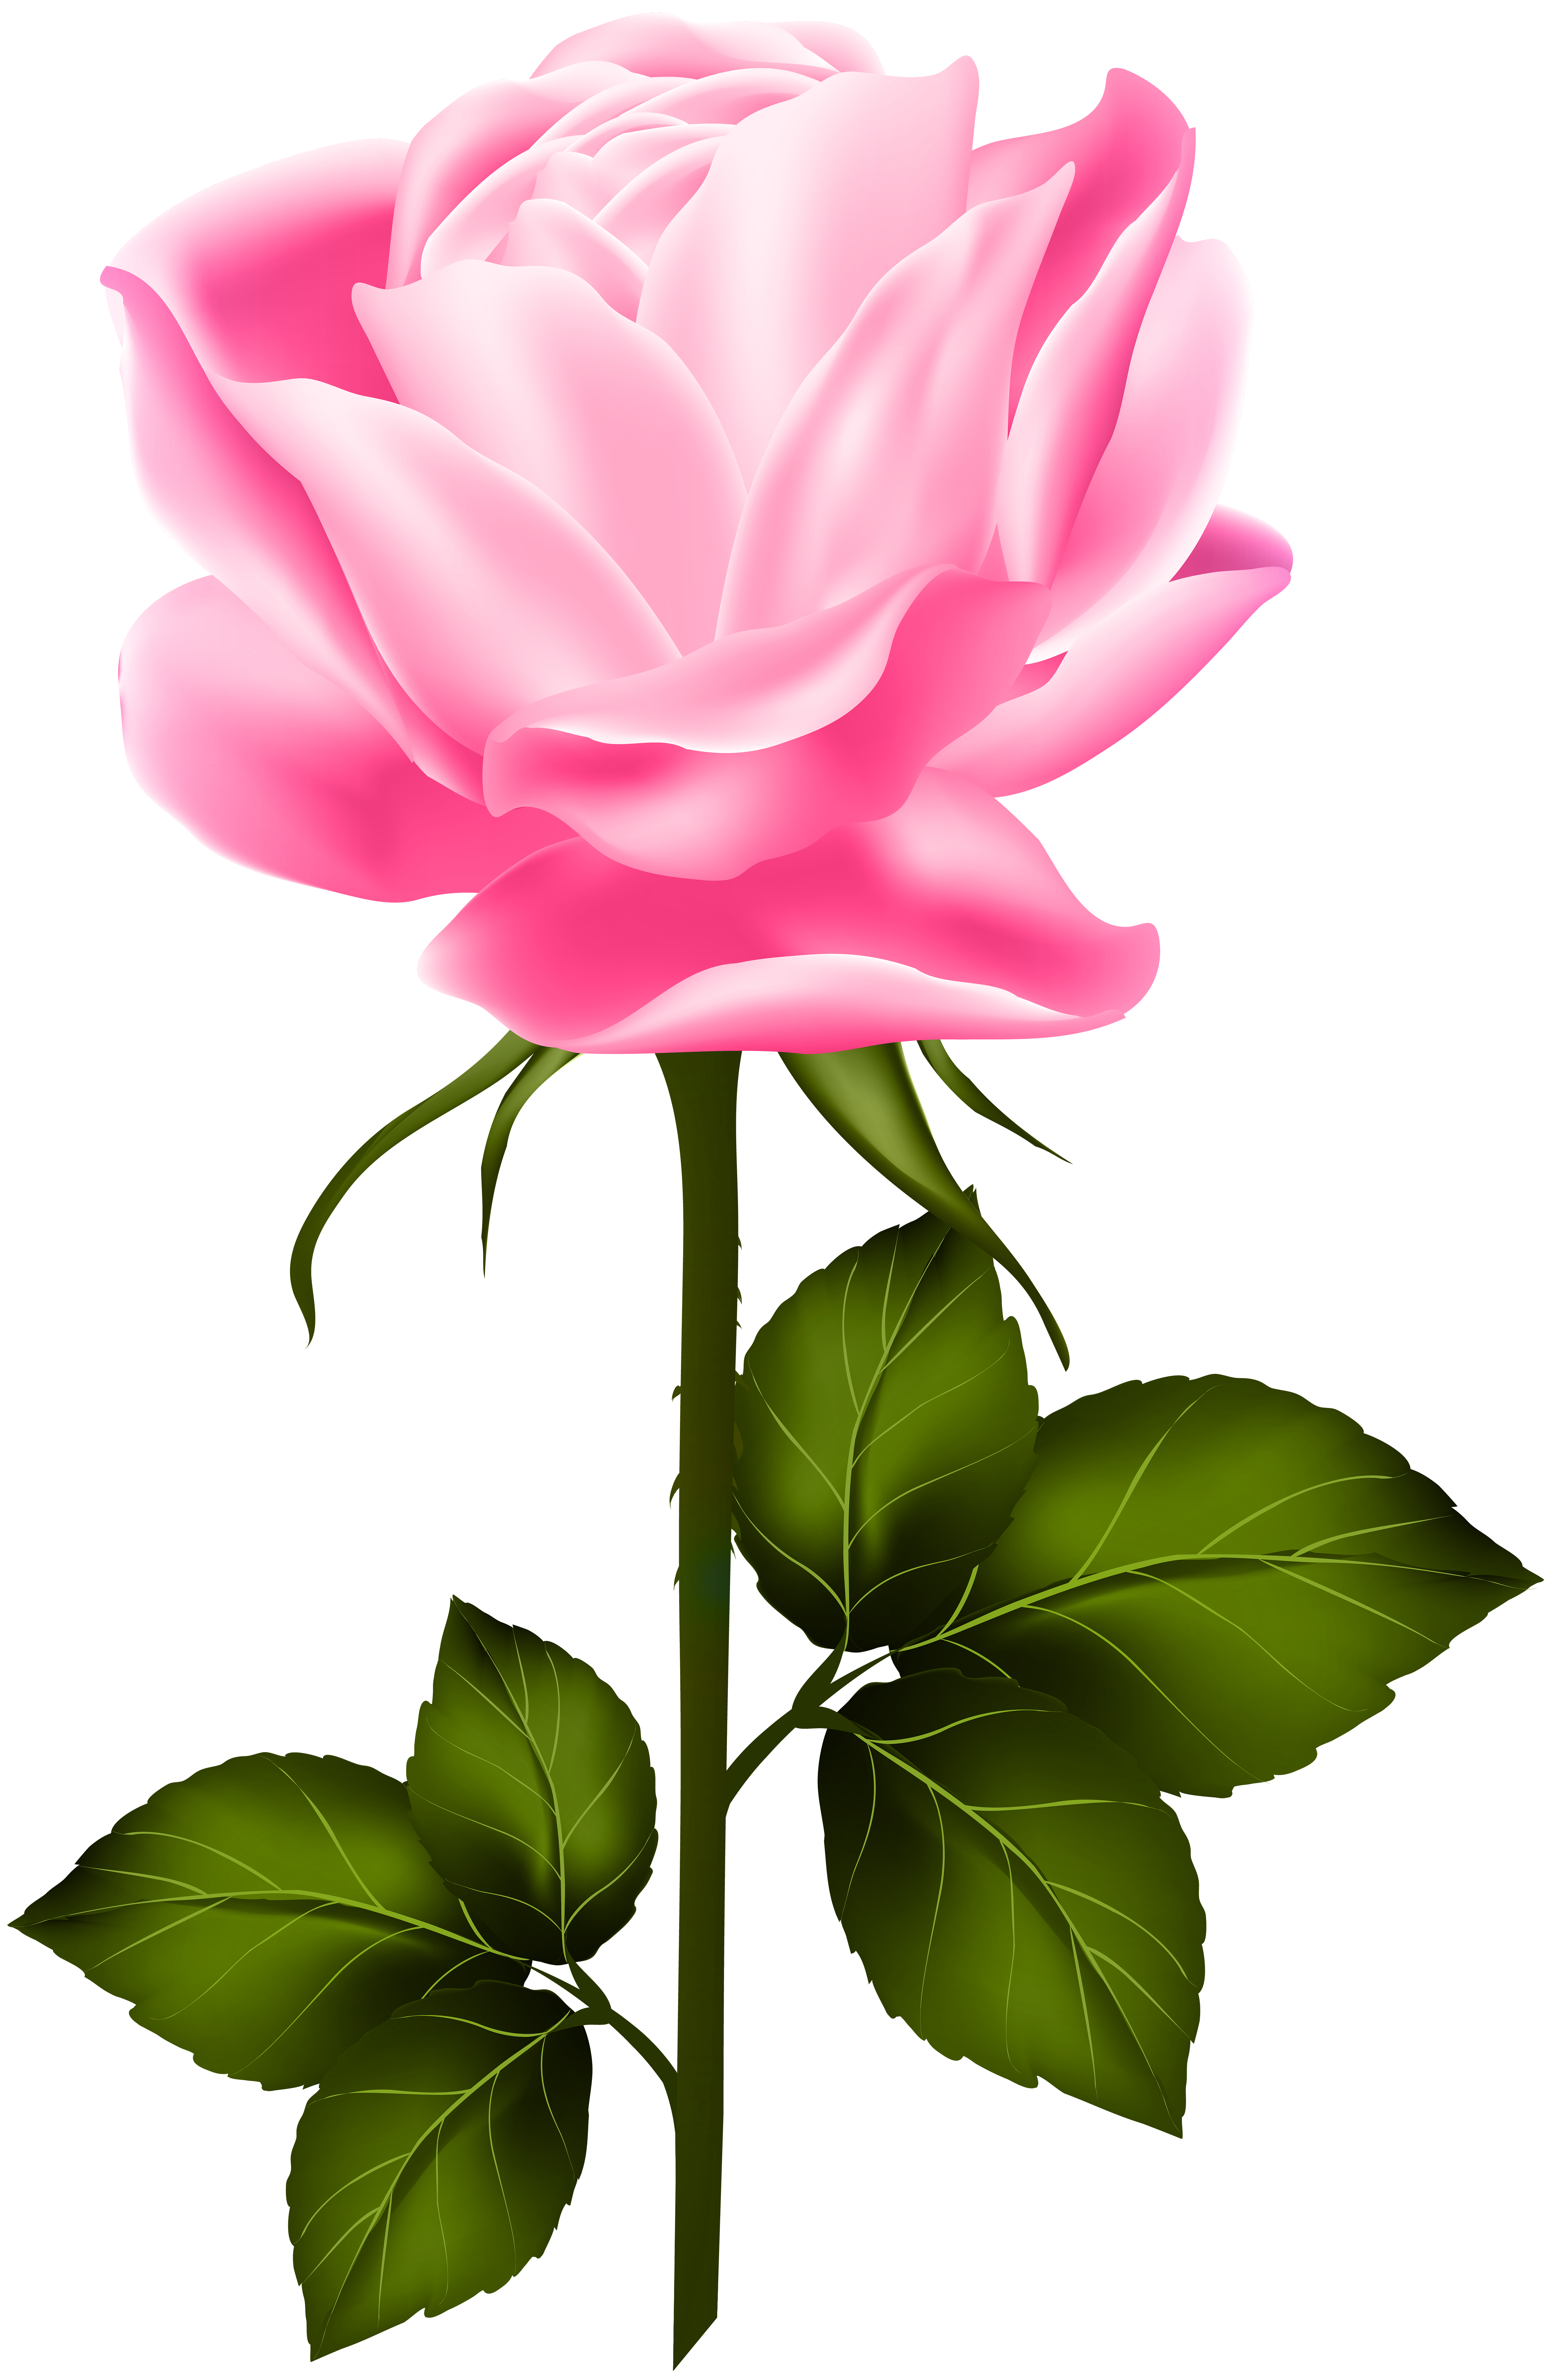 Pink with stem png. Clipart rose leaf